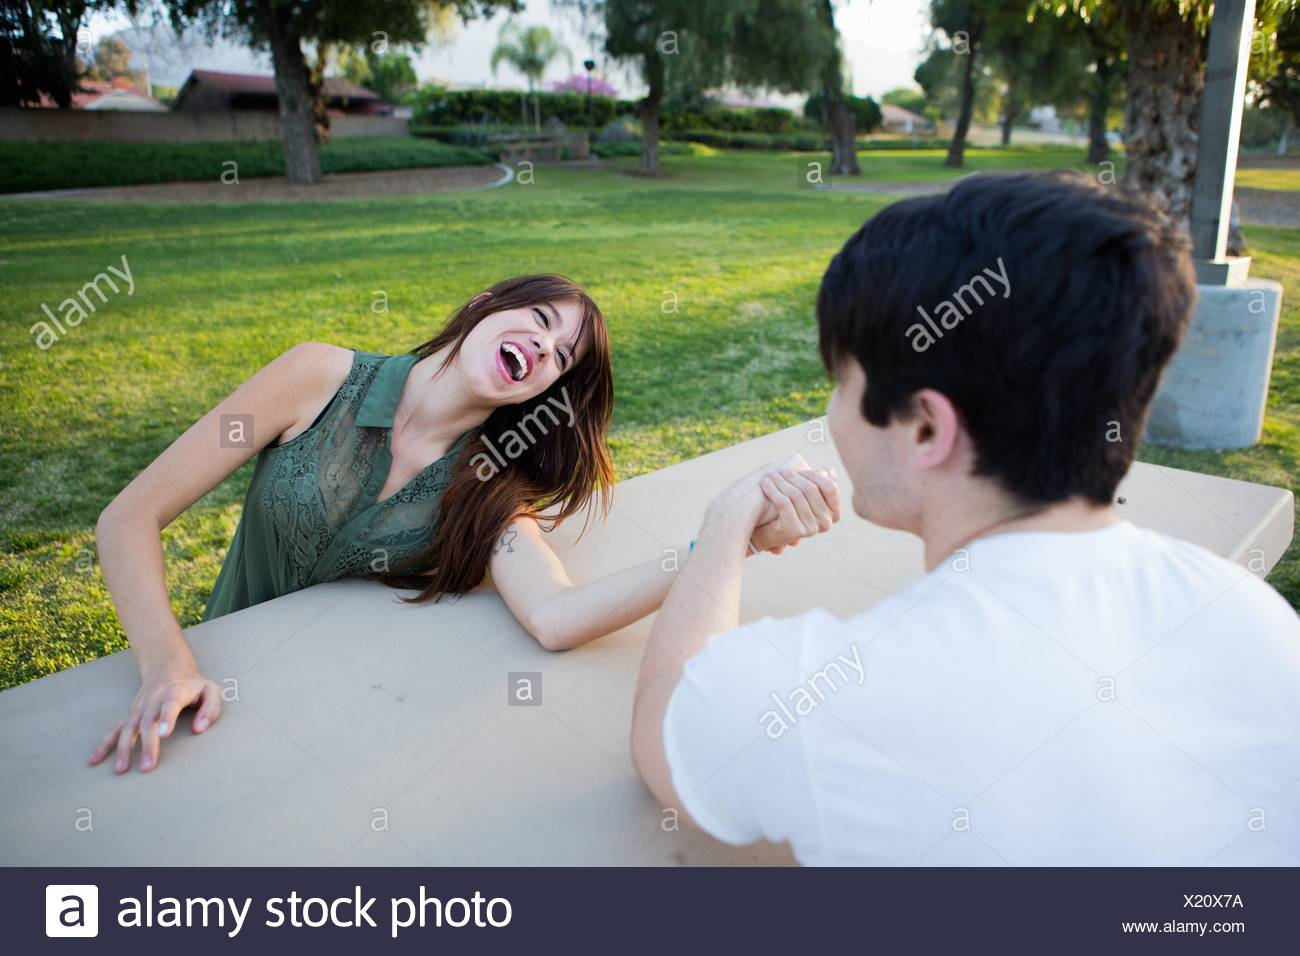 Young couple pretending to arm wrestle at picnic bench in park - Stock Image